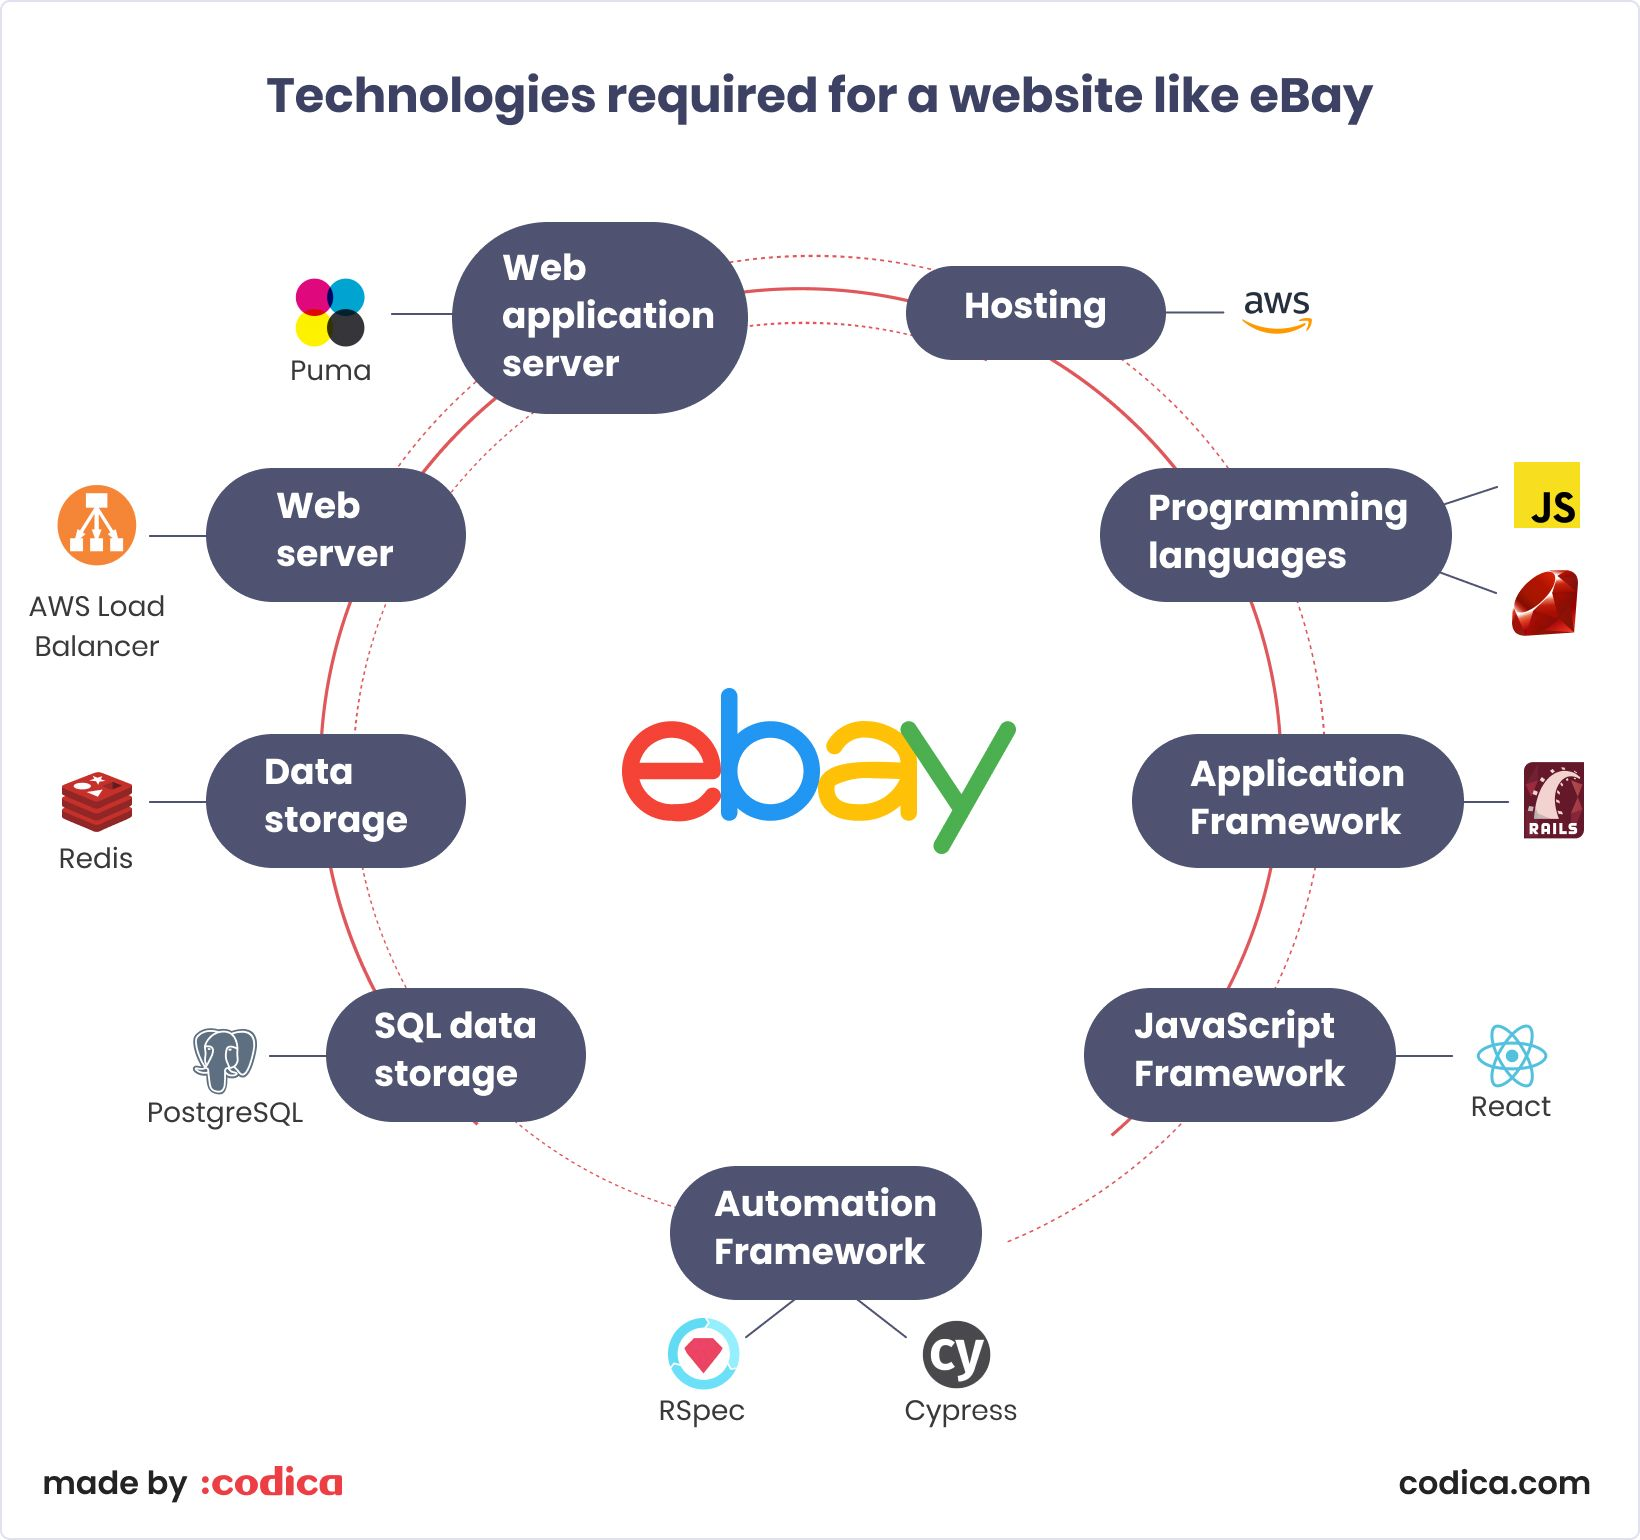 Ebay Technical Stack In 2020 Ebay Website Ebay Web